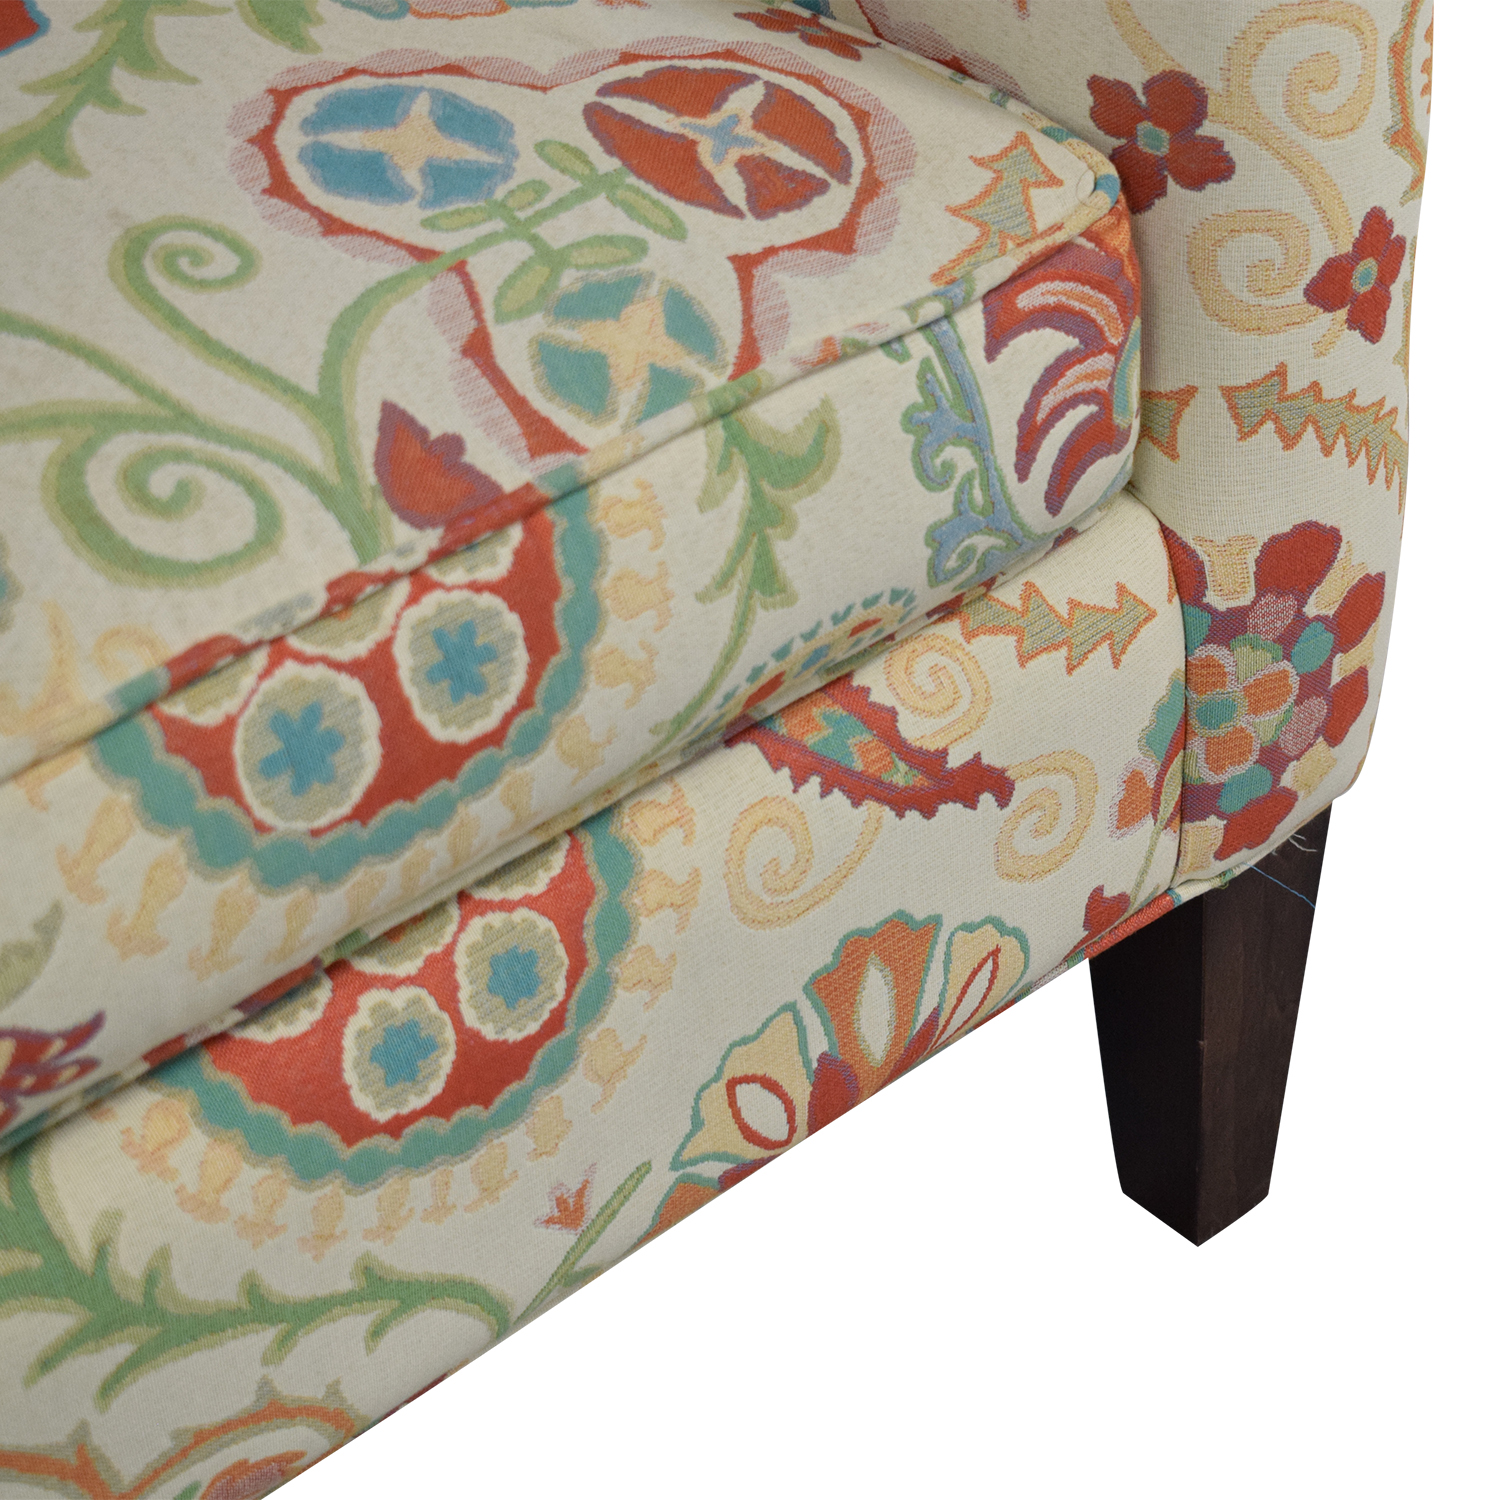 Crate & Barrel Crate & Barrel Upholstered Printed Armchair ma